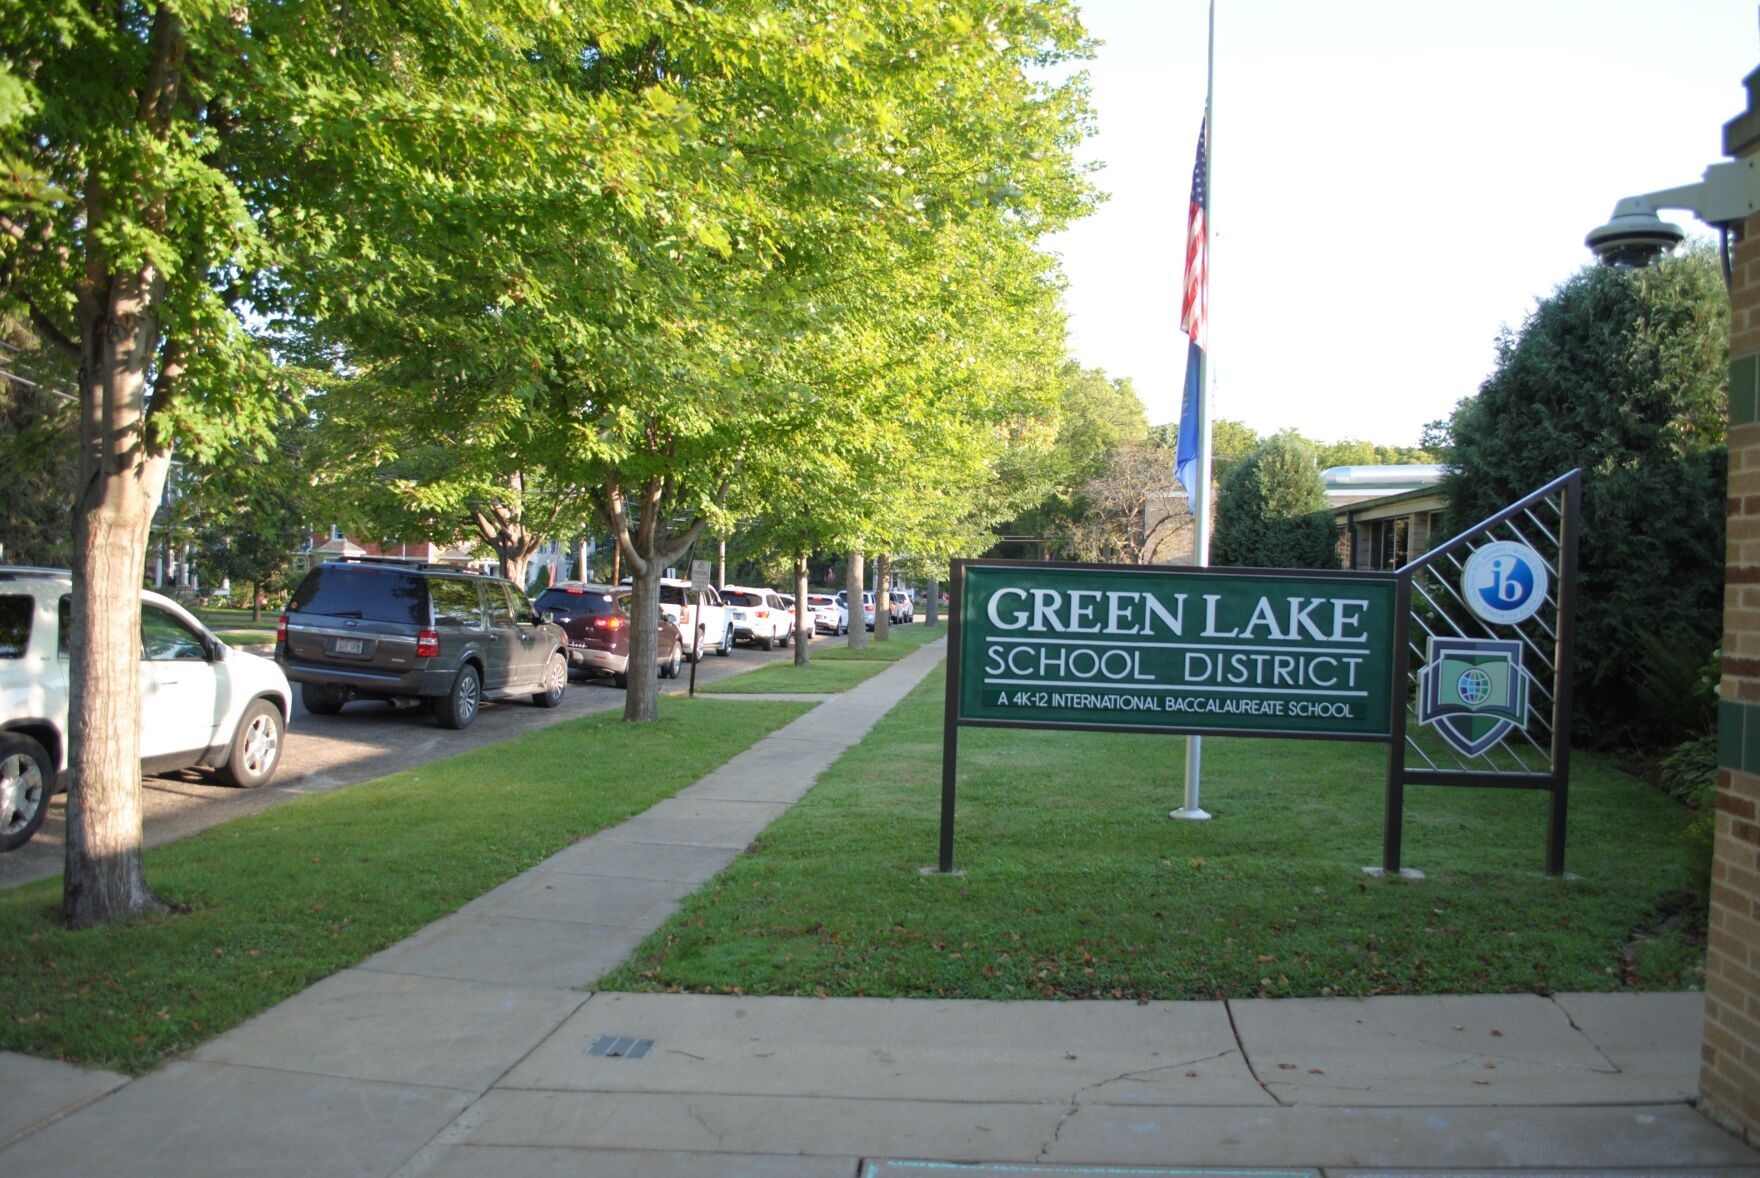 JUST IN: Green Lake names superintendent finalists, School Board will conduct interviews Monday